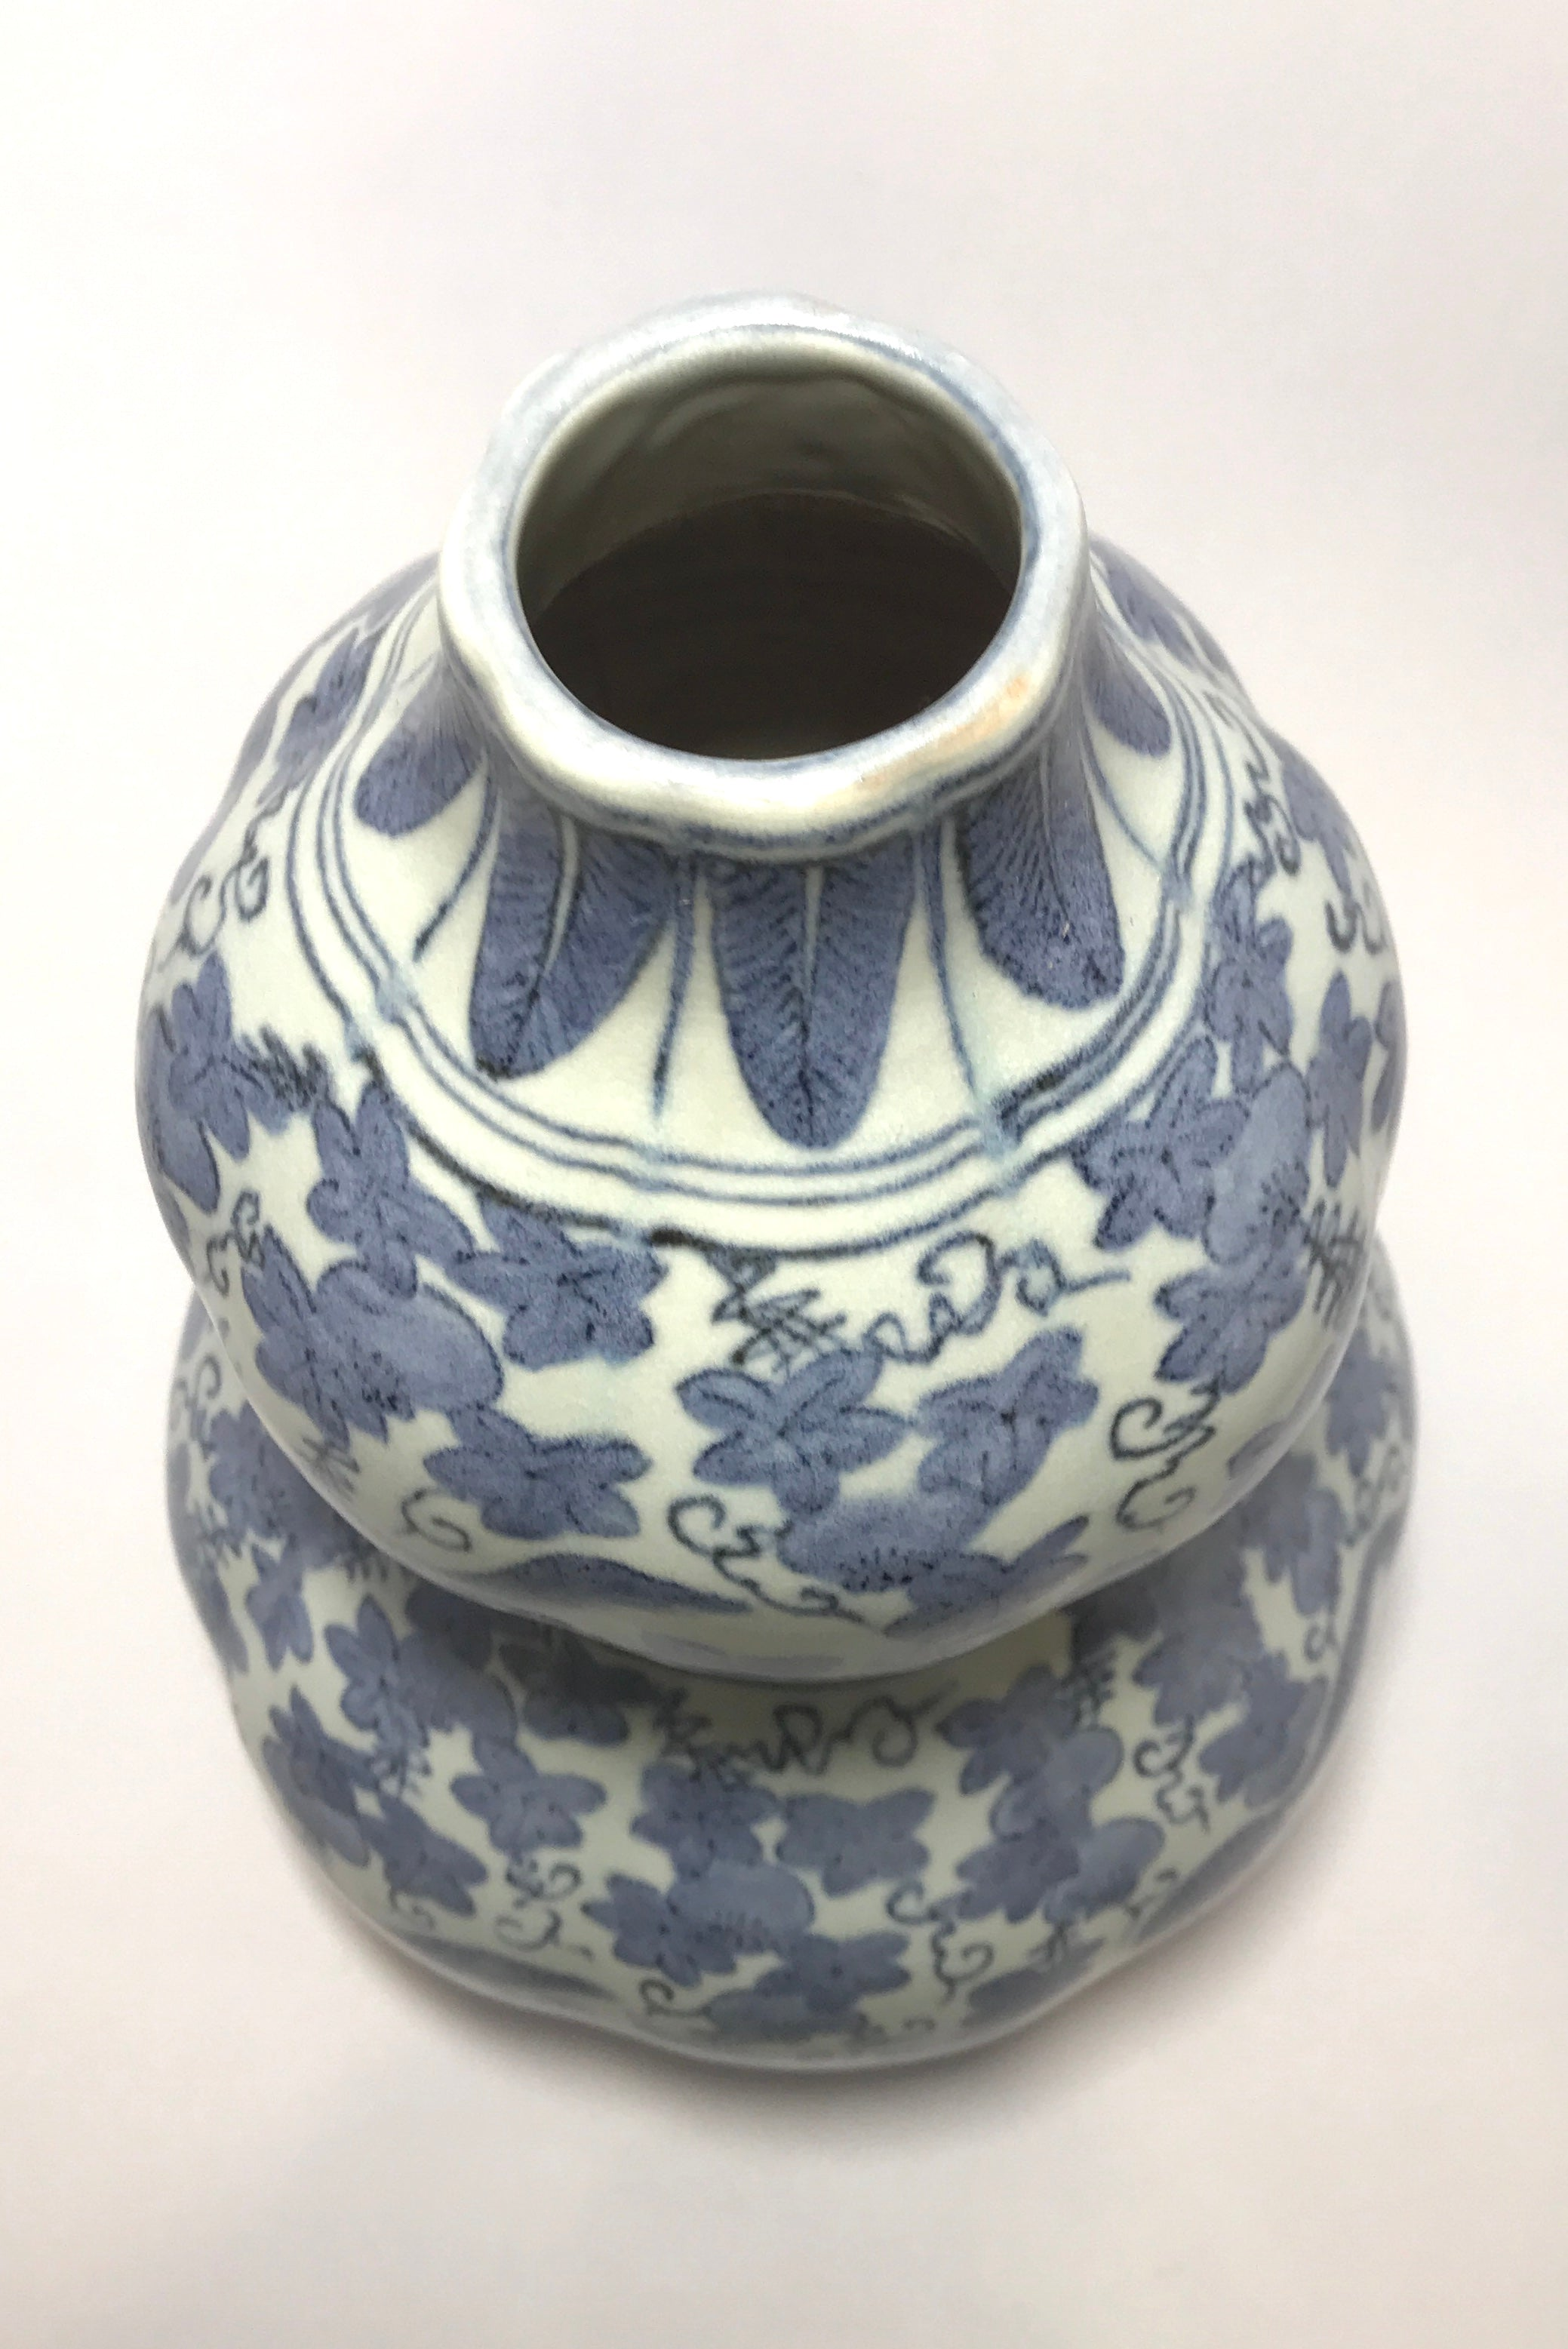 Ming Dynasty Double Gourd Vase with Wanli Mark - 10 Dynasties